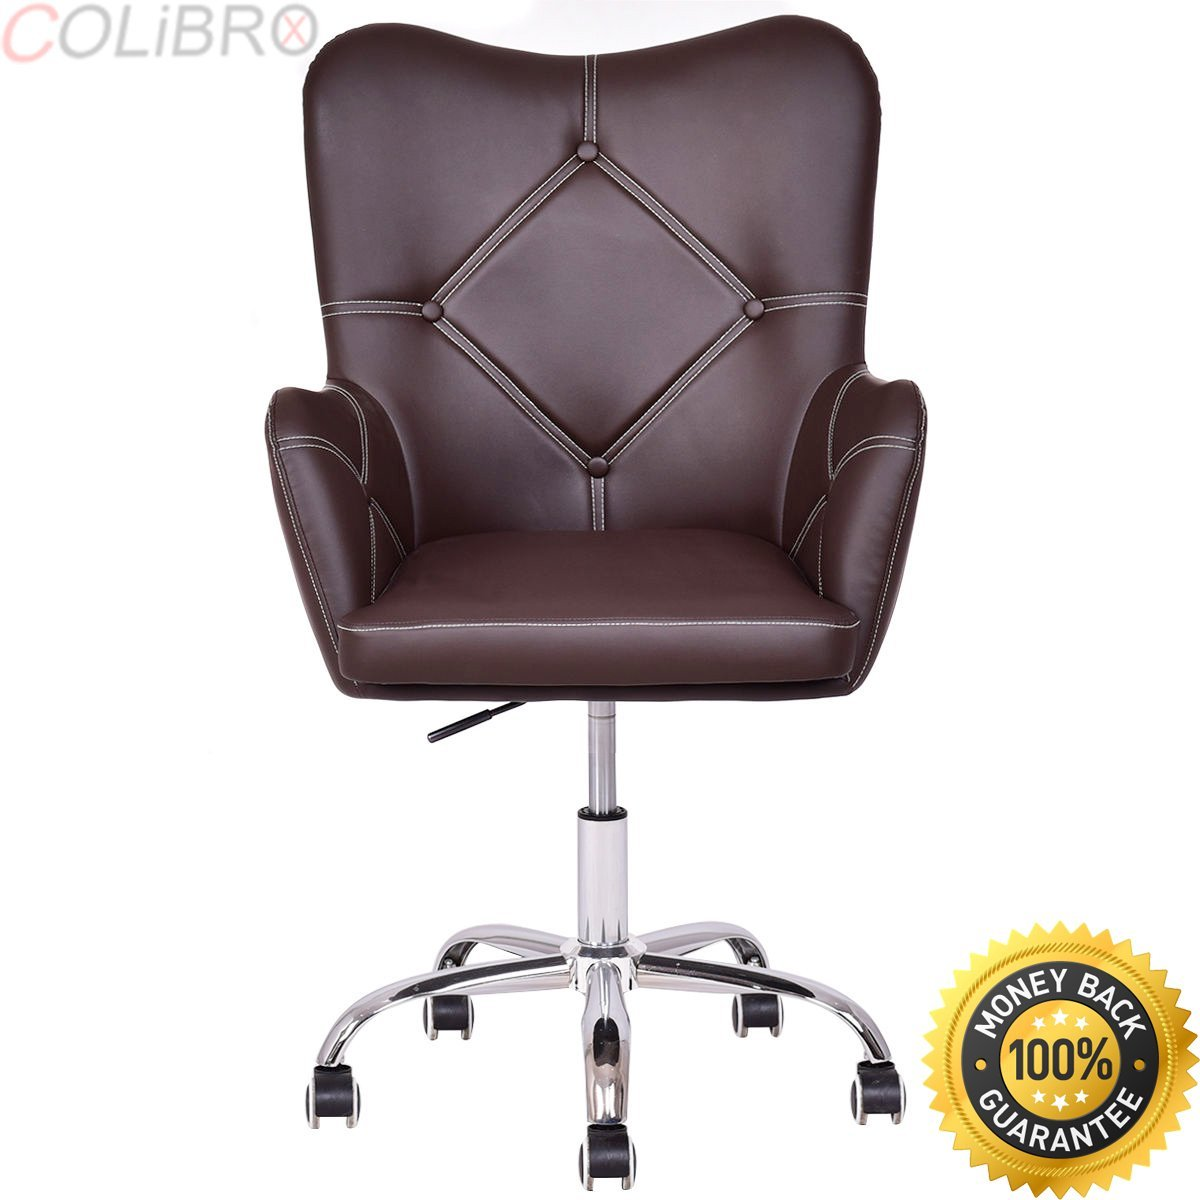 COLIBROX--Set of 2 Home Office Task Chair PU Leather Swivel Adjustable Tufted Back Rolling. desk chair walmart. desk chair target. cheap desk chairs. desk chair amazon.best office chairs office depot.